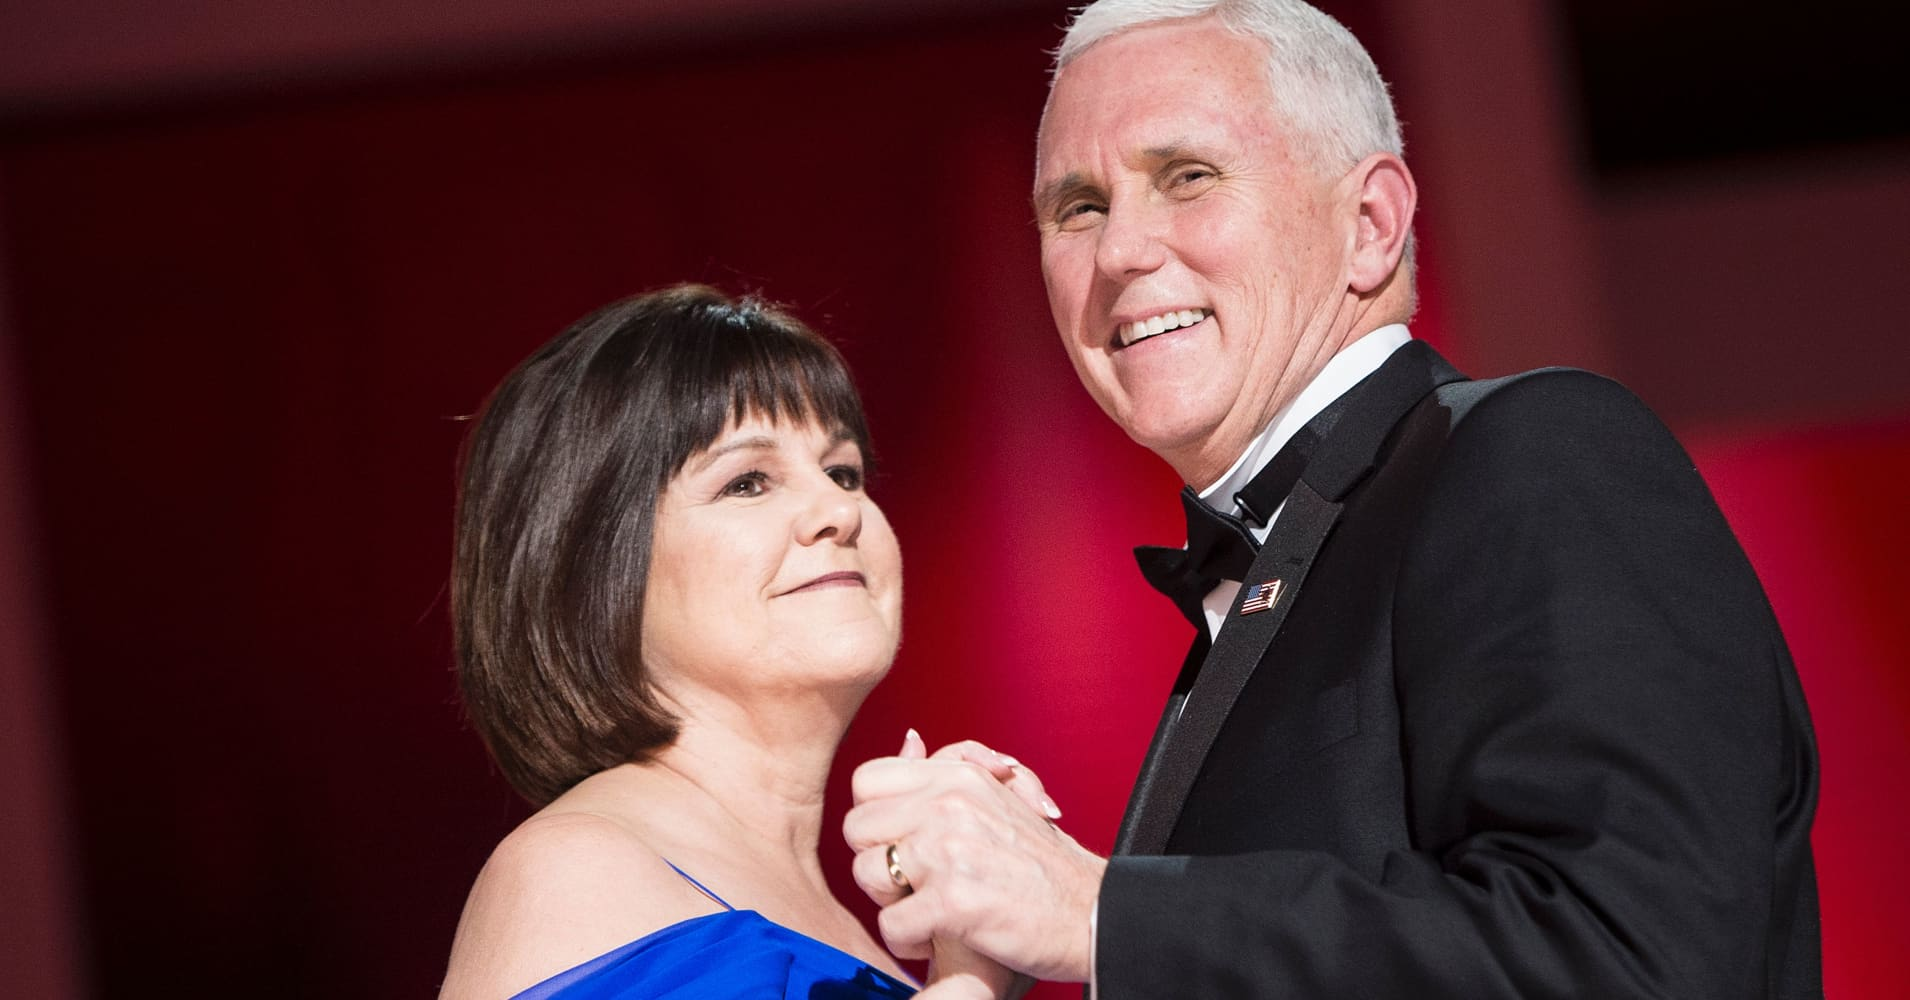 Vice President Mike Pence and Karen Pence dance during the Liberty ball at the Walter E. Washington Convention Center on January 20, 2017 in Washington, DC.